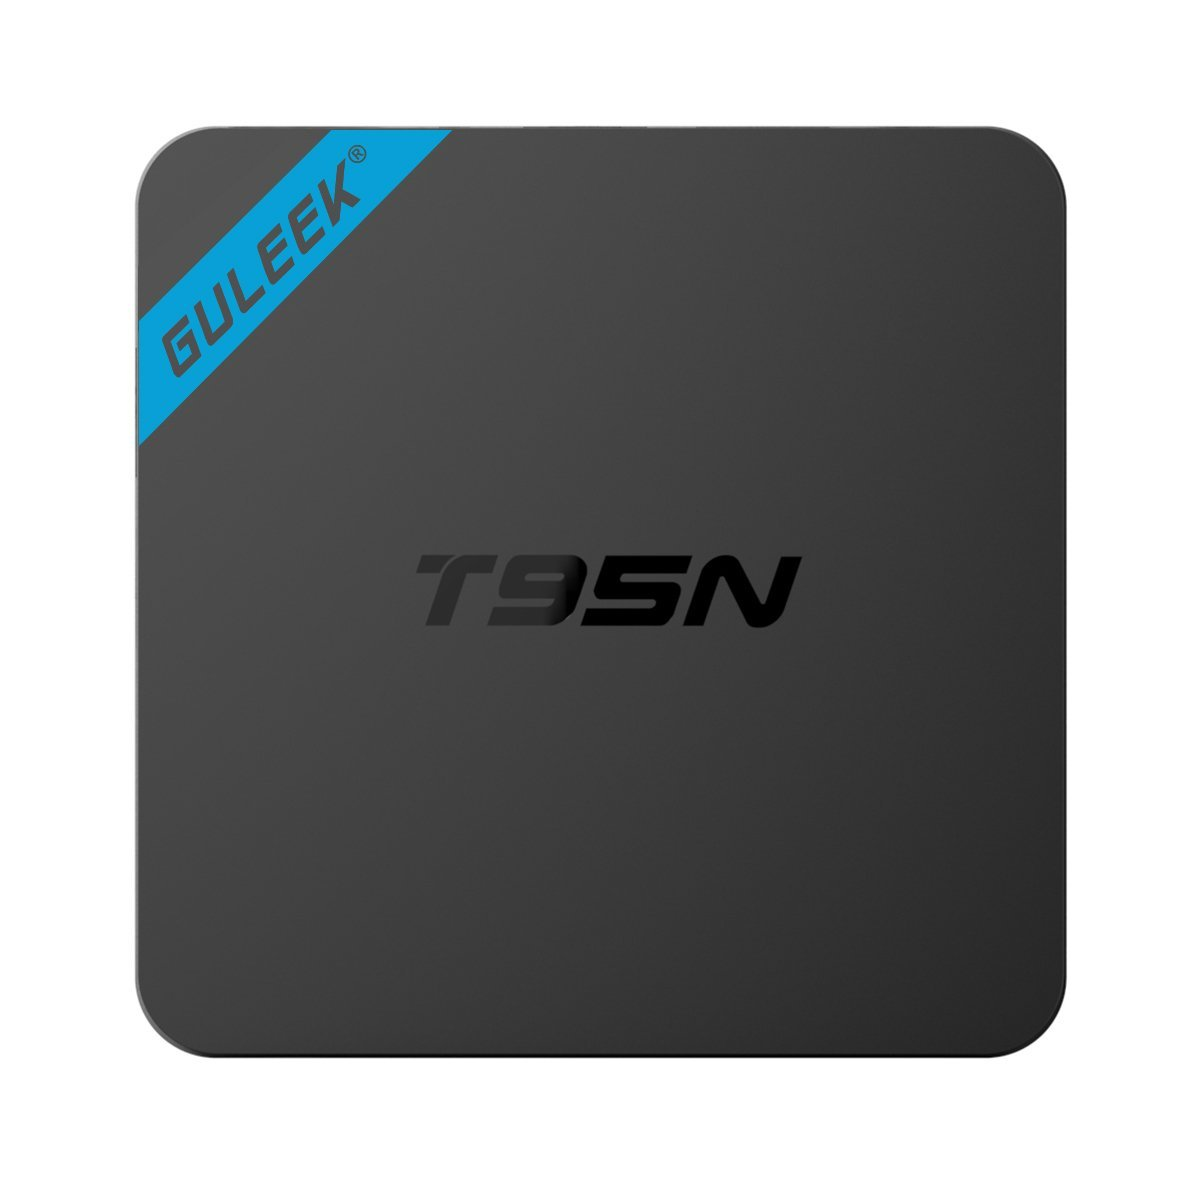 GULEEK T95N pro Android 6.0 Smart TV Box WIFI Free 4K Streaming Media Player Full Loaded with Amlogic S905X Quad Core for Video Movies Sports TV Shows Gaming